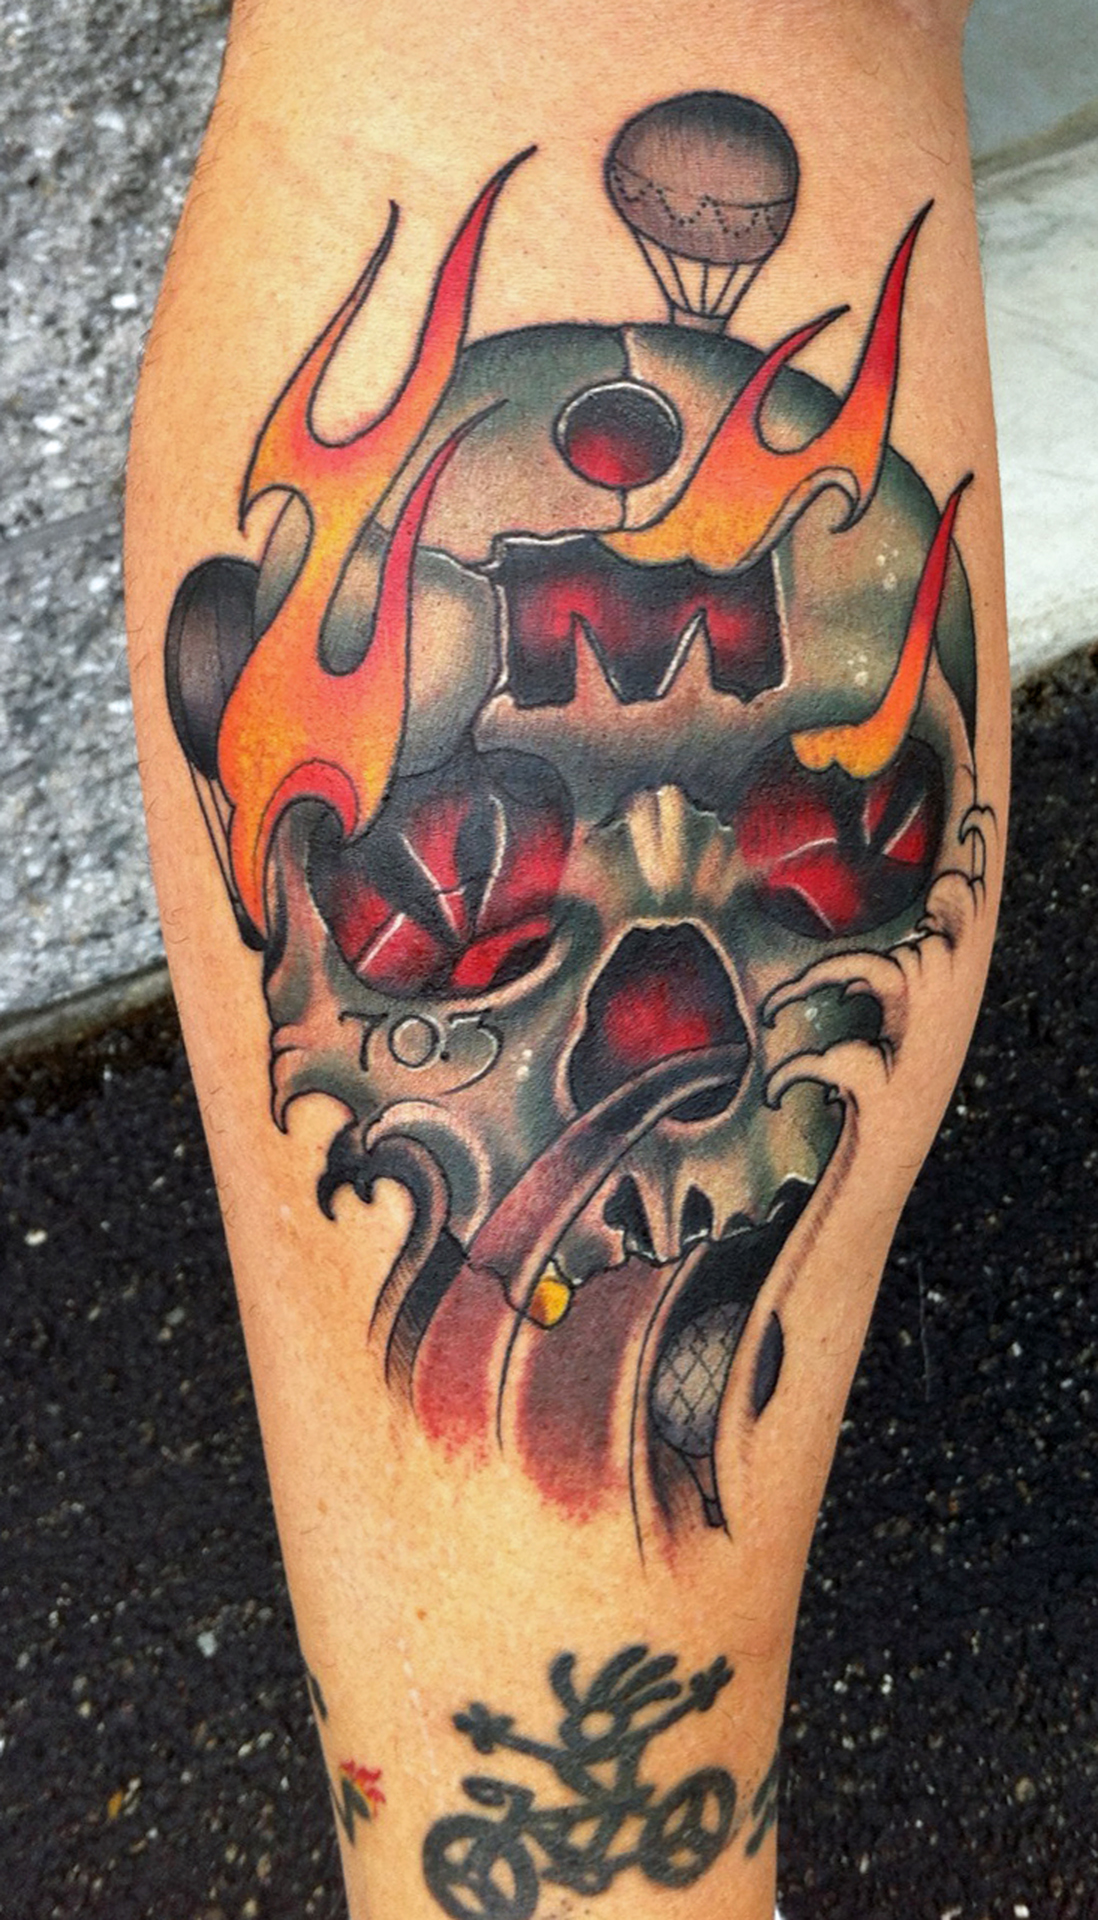 Tattoo Syracuse Ironman 70 3 Other Ironman Journey S Ideas And Designs